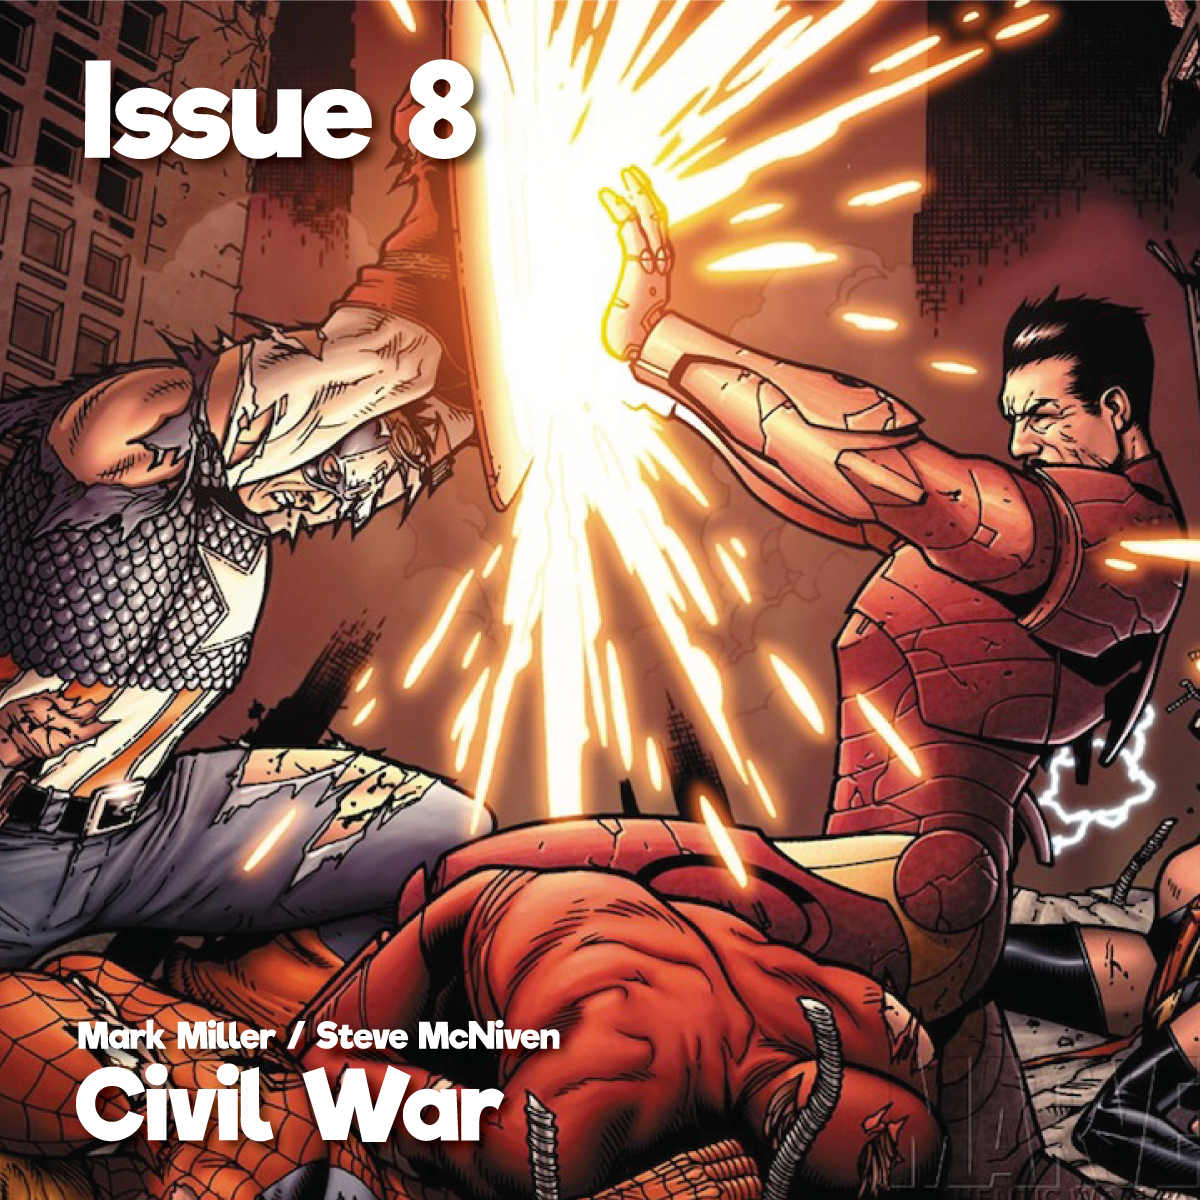 Issue8_CivilWar1200x1200.png